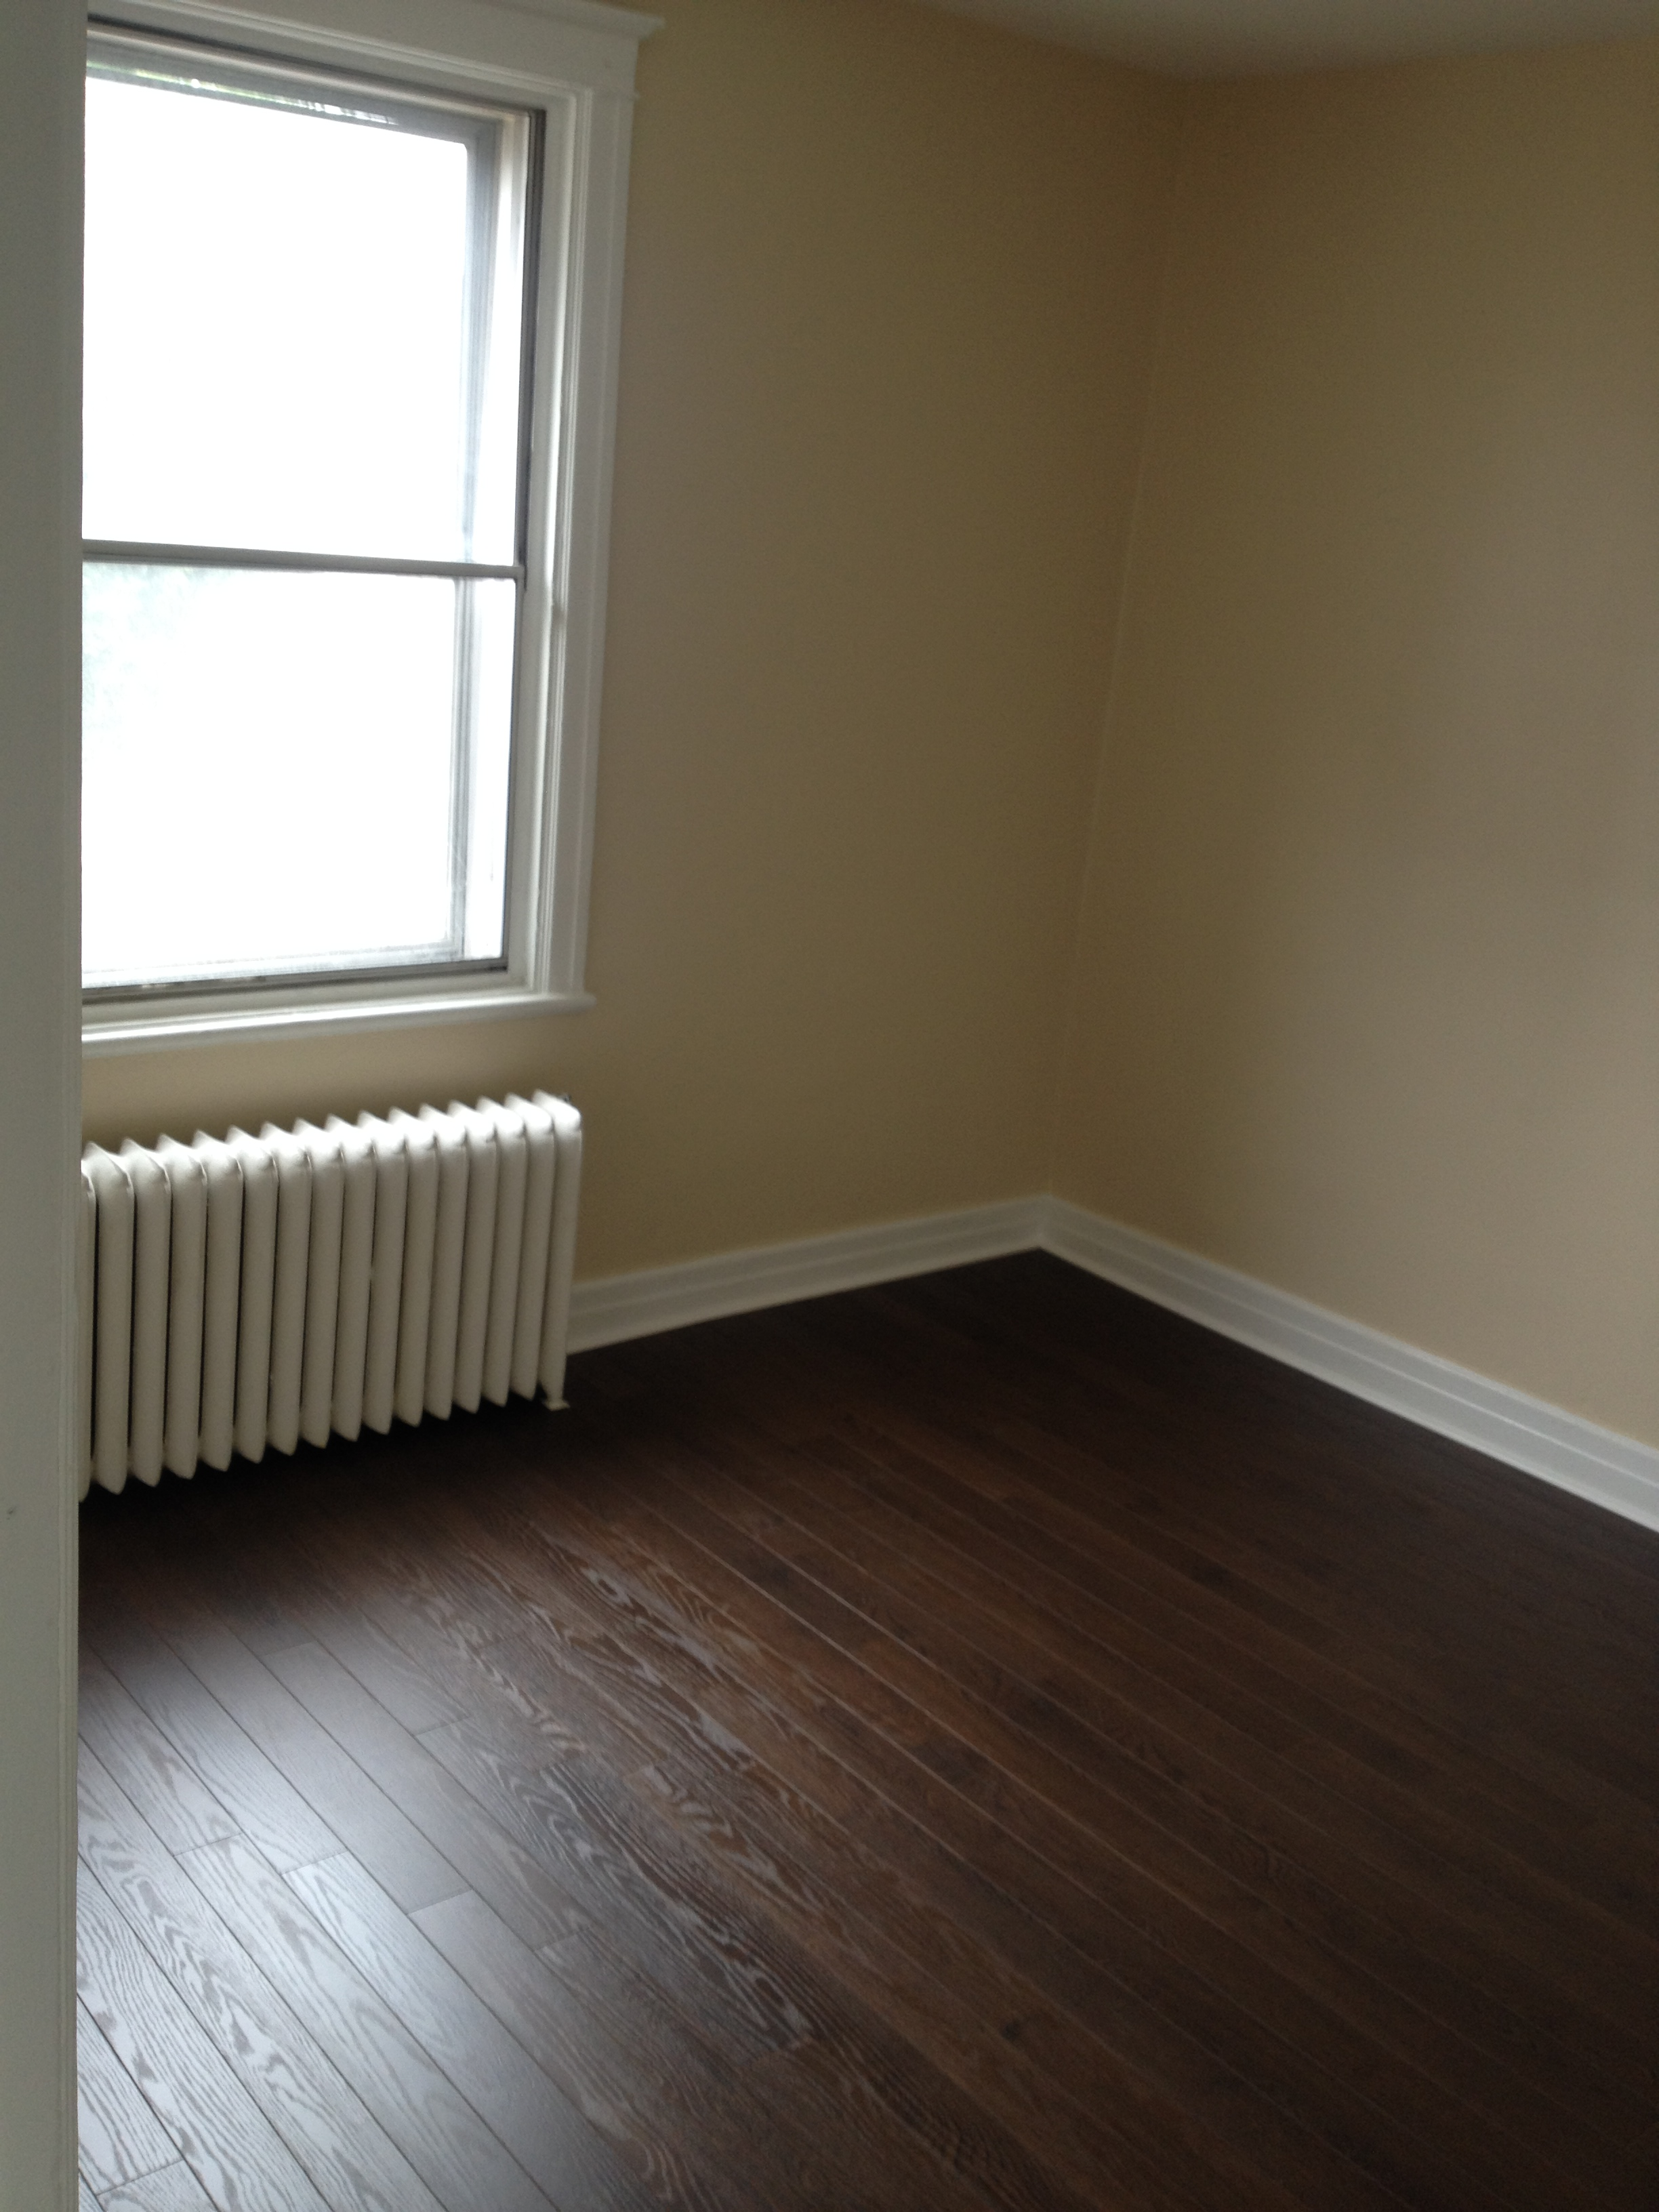 2 bedroom Apartments for rent in Cote-St-Luc at 5430 Cote Saint Luc - Photo 03 - RentersPages – L112094